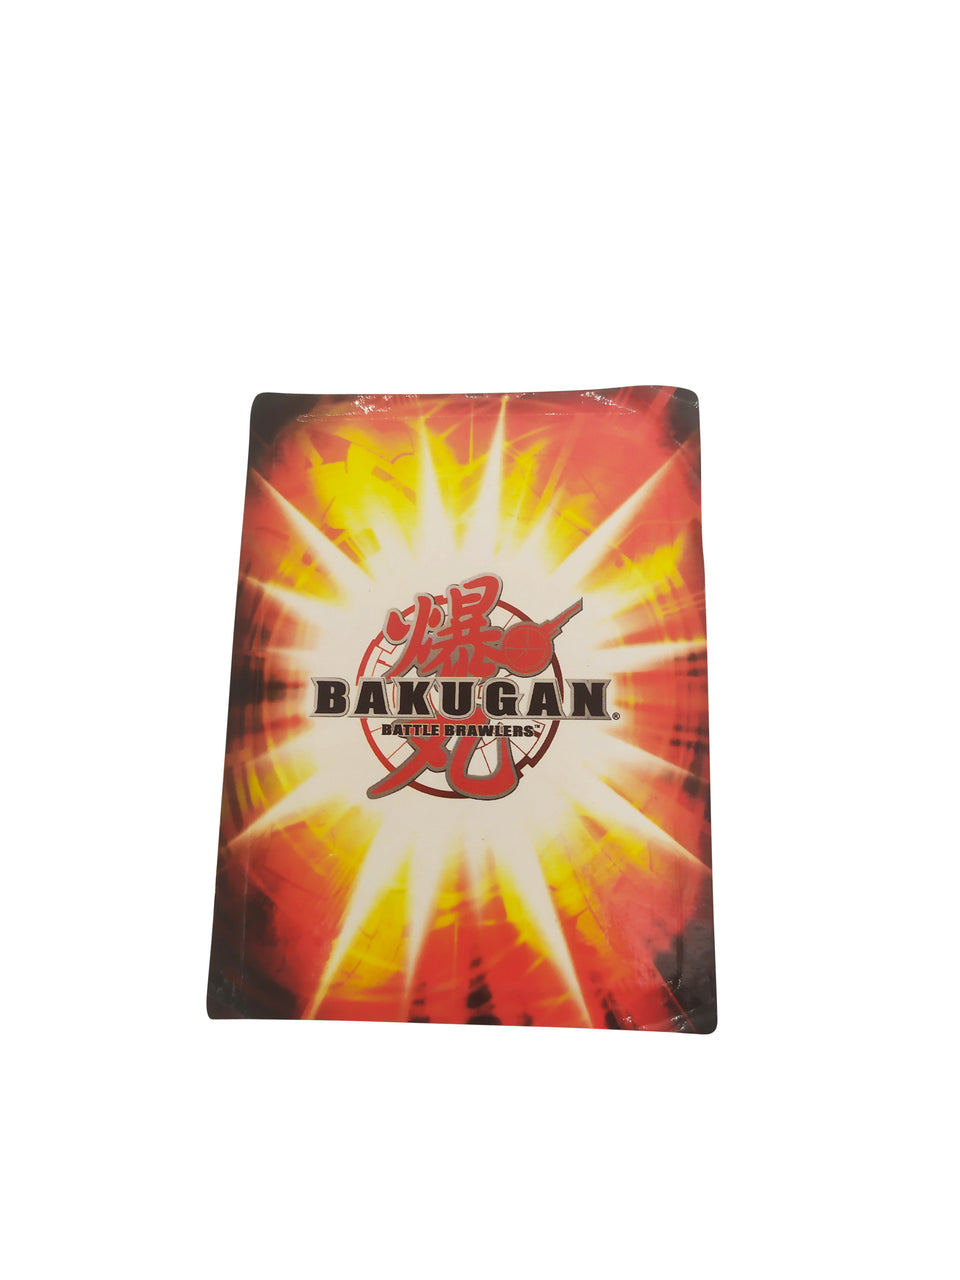 BAKUGAN BATTLE BRAWLERS - COLOR RED- QUAKIX GOREM AND KLAWGOR